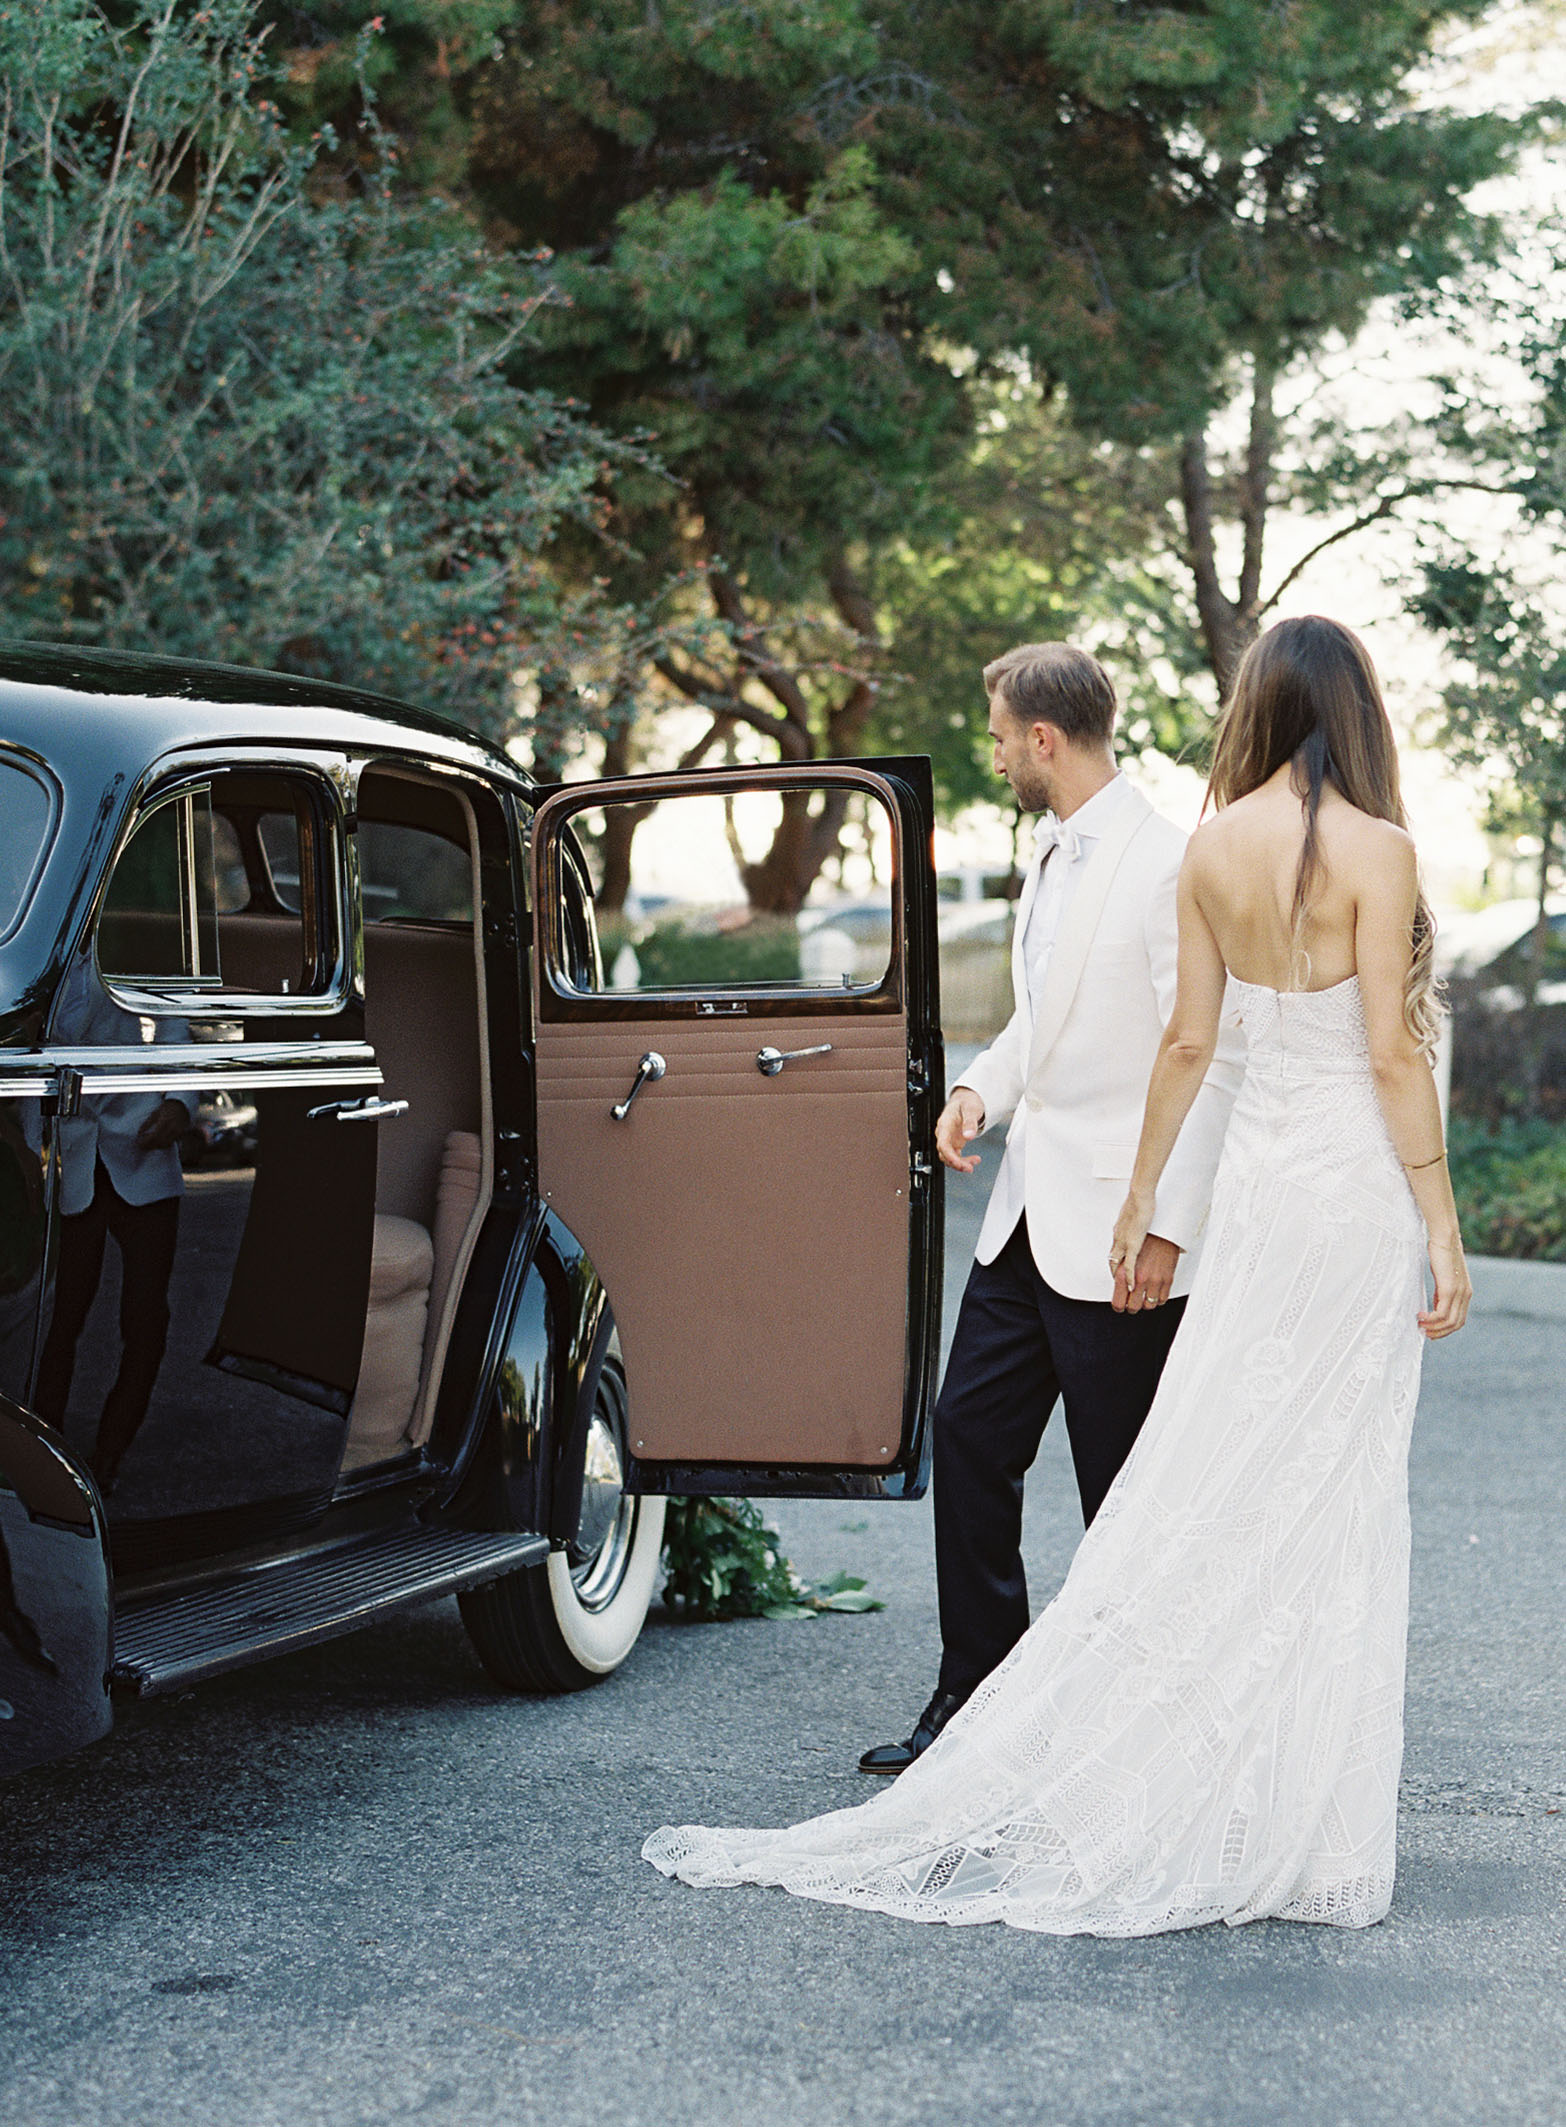 Meghan Mehan Photography - San Francisco Wedding - Film Wedding Photography - 043.jpg